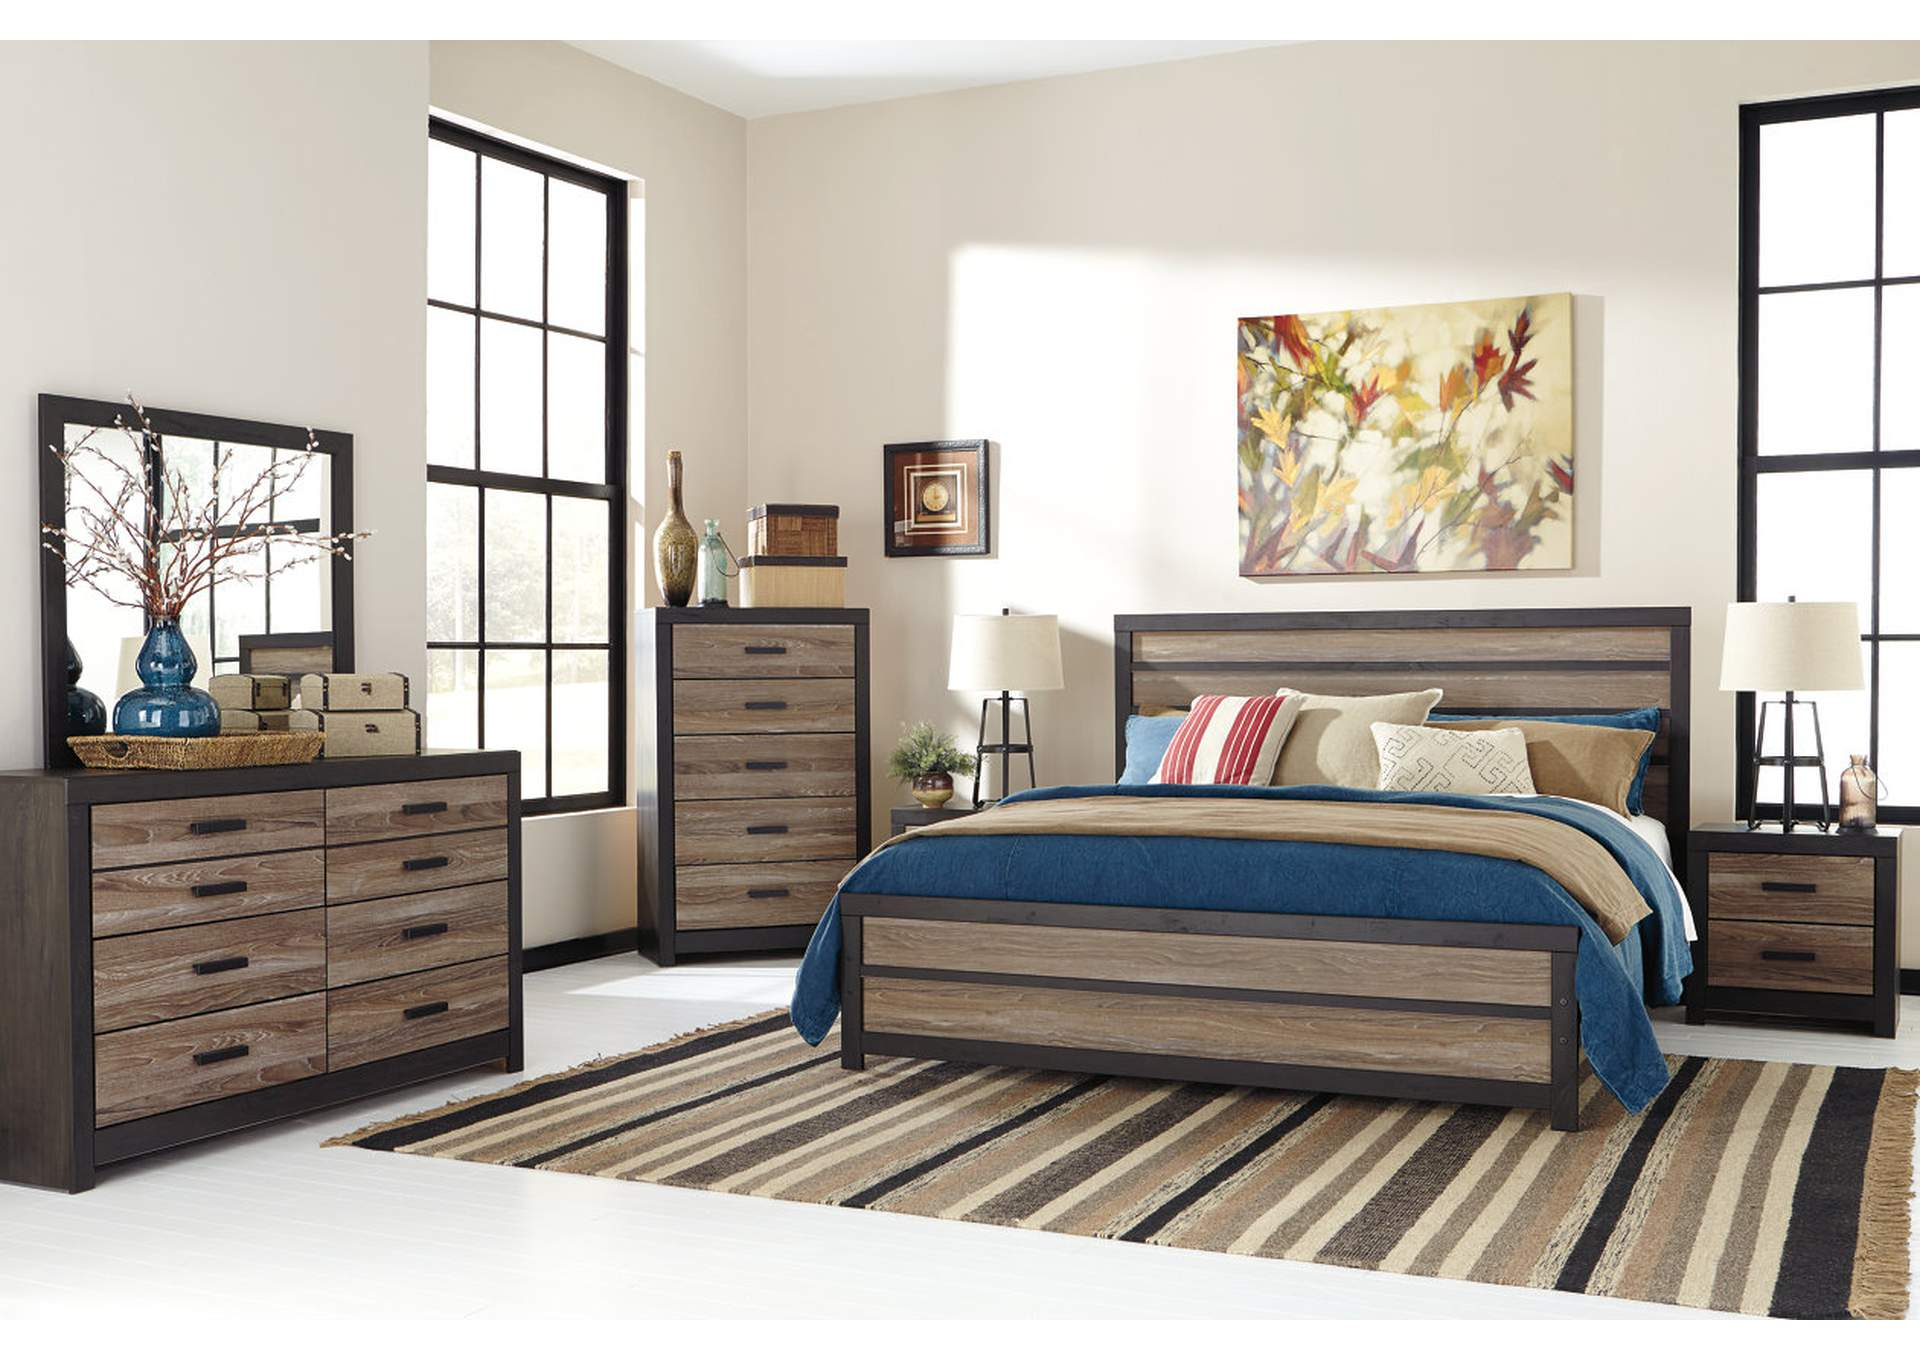 Harlinton King Panel Bed w/Dresser, Mirror & Drawer Chest,Signature Design By Ashley